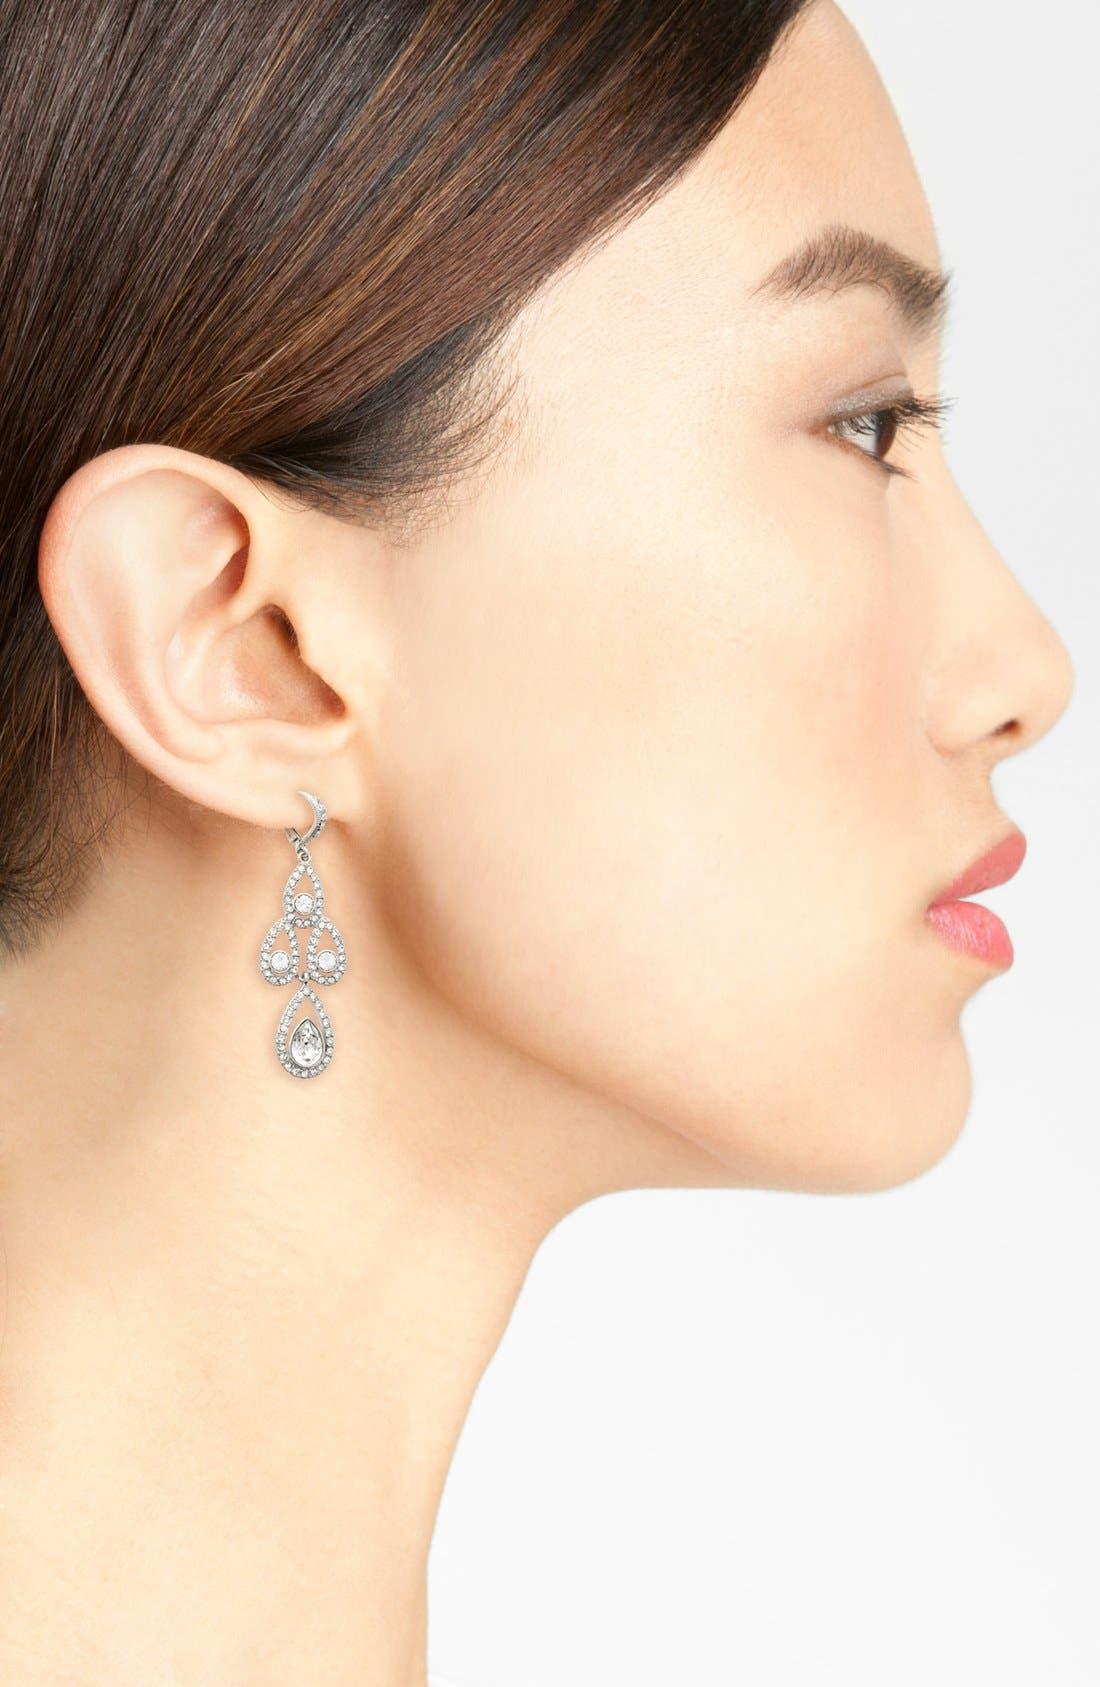 Crystal Chandelier Drop Earrings,                             Alternate thumbnail 2, color,                             Silver